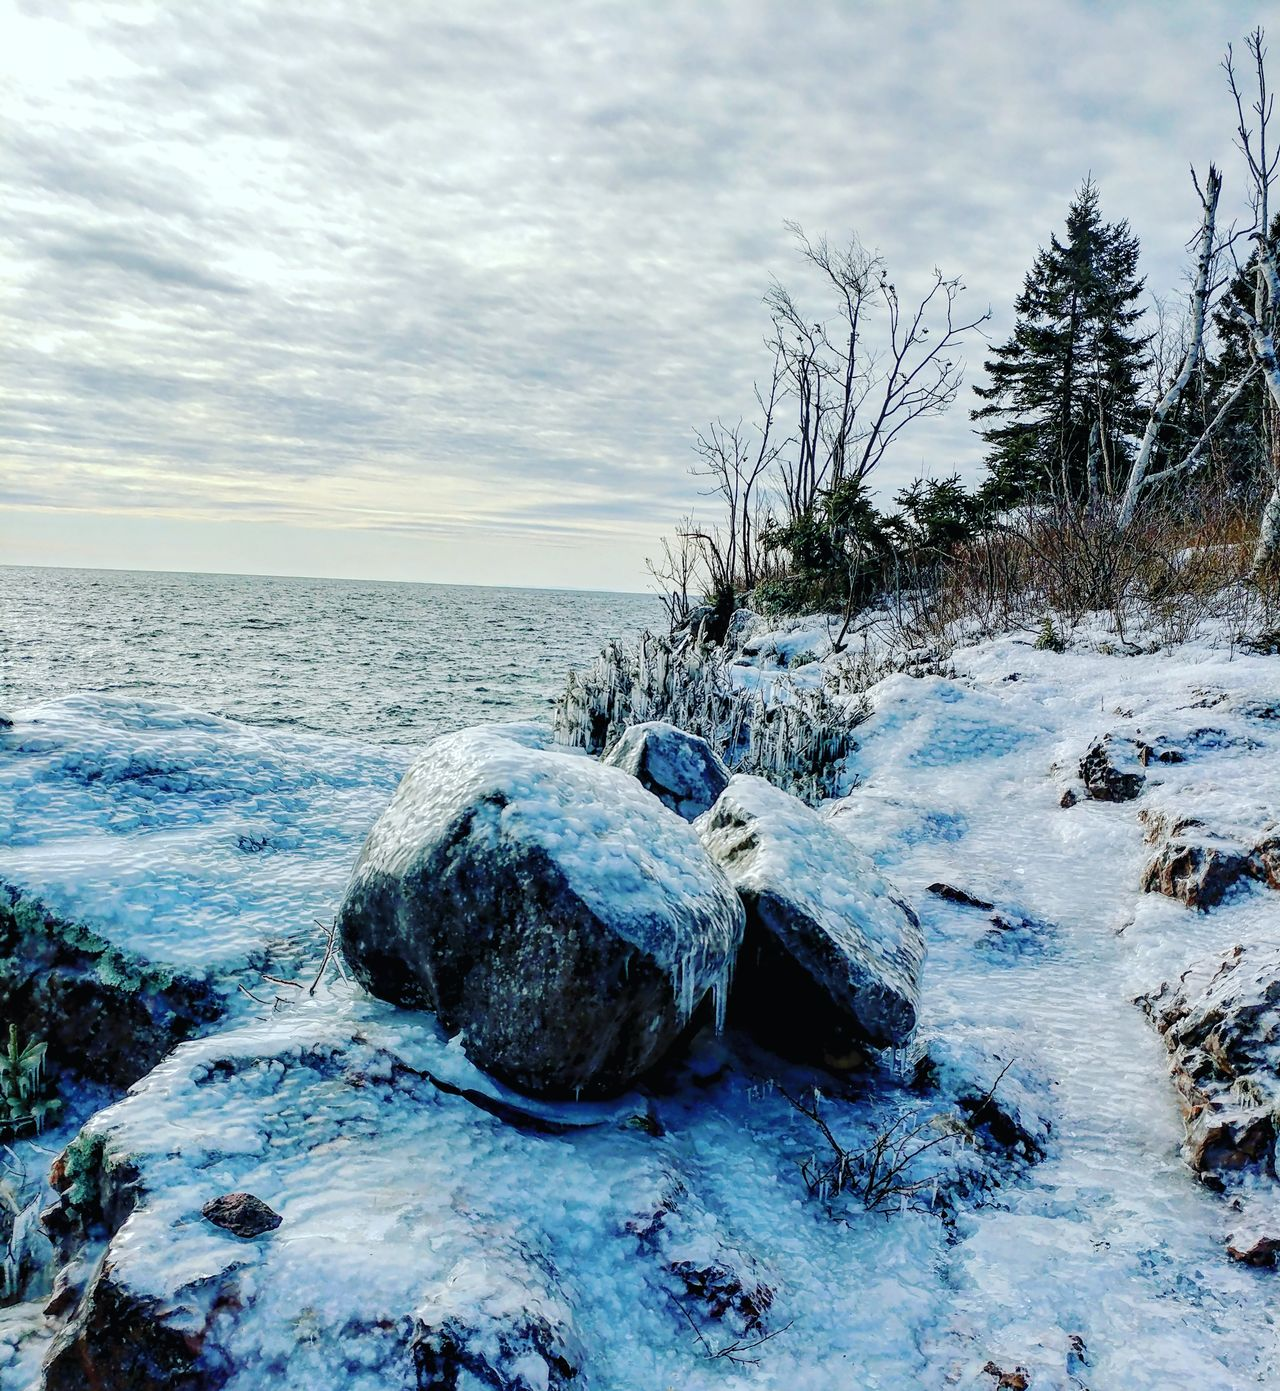 Backpacking along the rocky cliffs covered with a limpid icy blanket.... 🌊❄️ Cold Temperature Sky Winter No People Nature Snow Frozen Beauty In Nature Cloud - Sky Outdoors Day Icy Coating Icy Waters OnlyinMN Hiking Adventures Backpacking North Shore Lake Superior Lake Superior Water Sea Breathtaking View Winter Hiking Just Takeing Photos Tettegouche State Park Icy Rocks